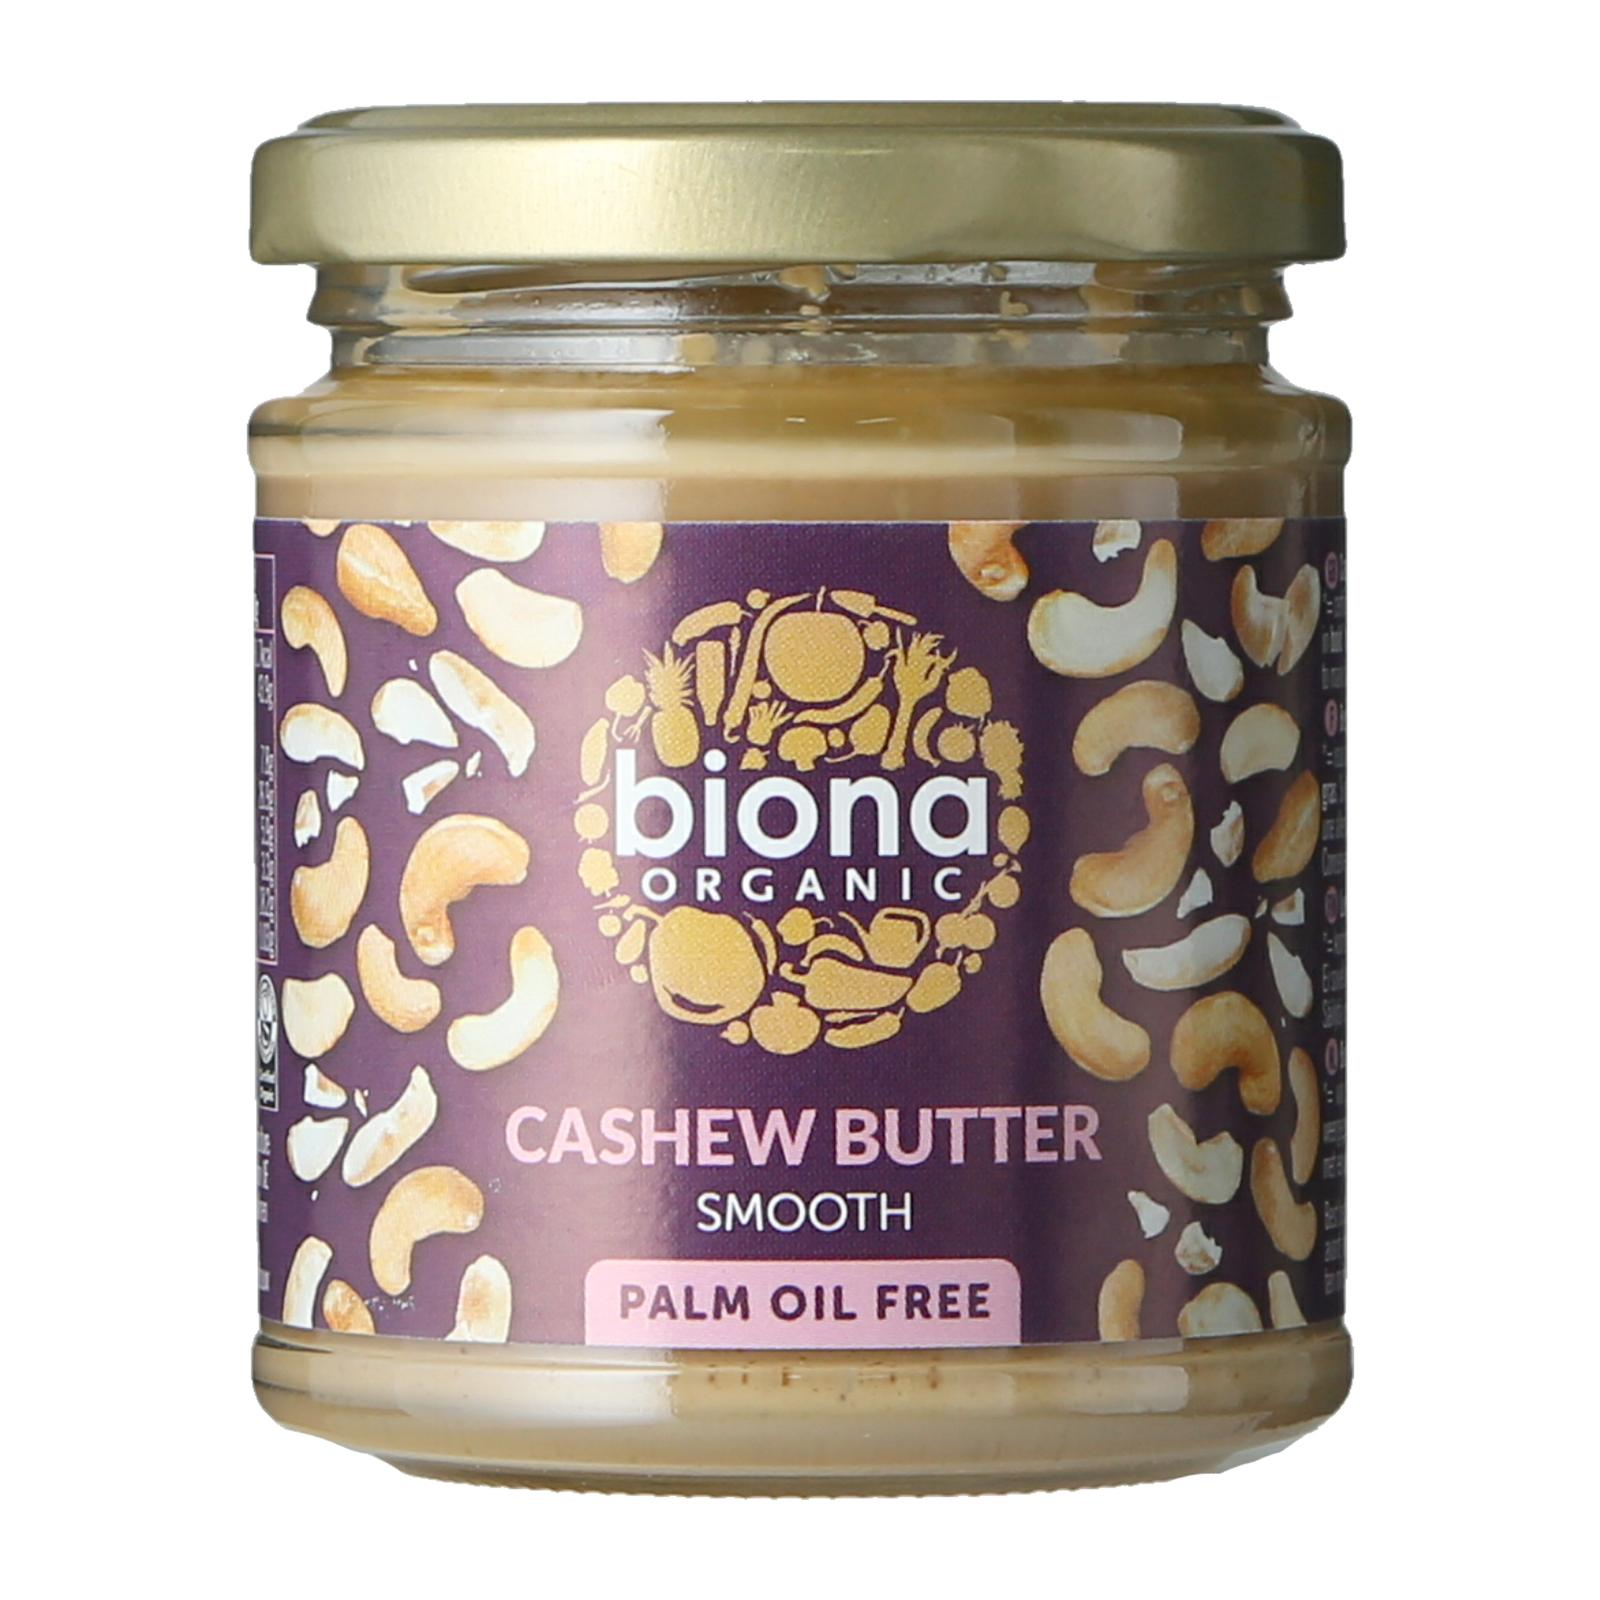 Biona Organic Cashewnut Butter - By Wholesome Harvest